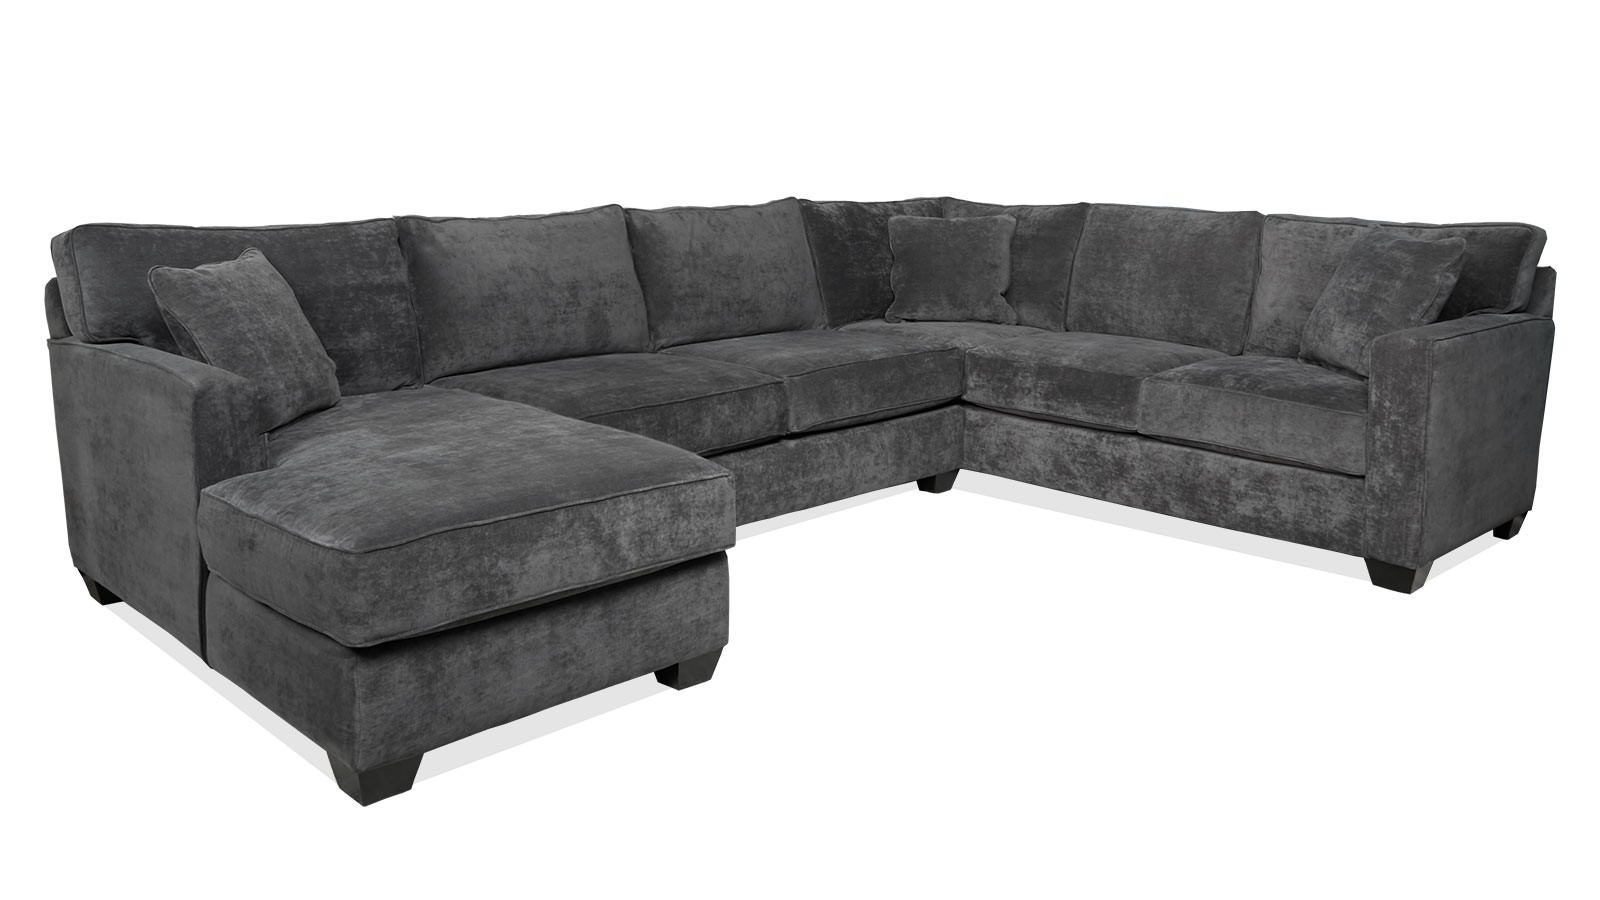 Gallery Furniture Intended For Gallery Furniture Sectional Sofas (Gallery 1 of 20)